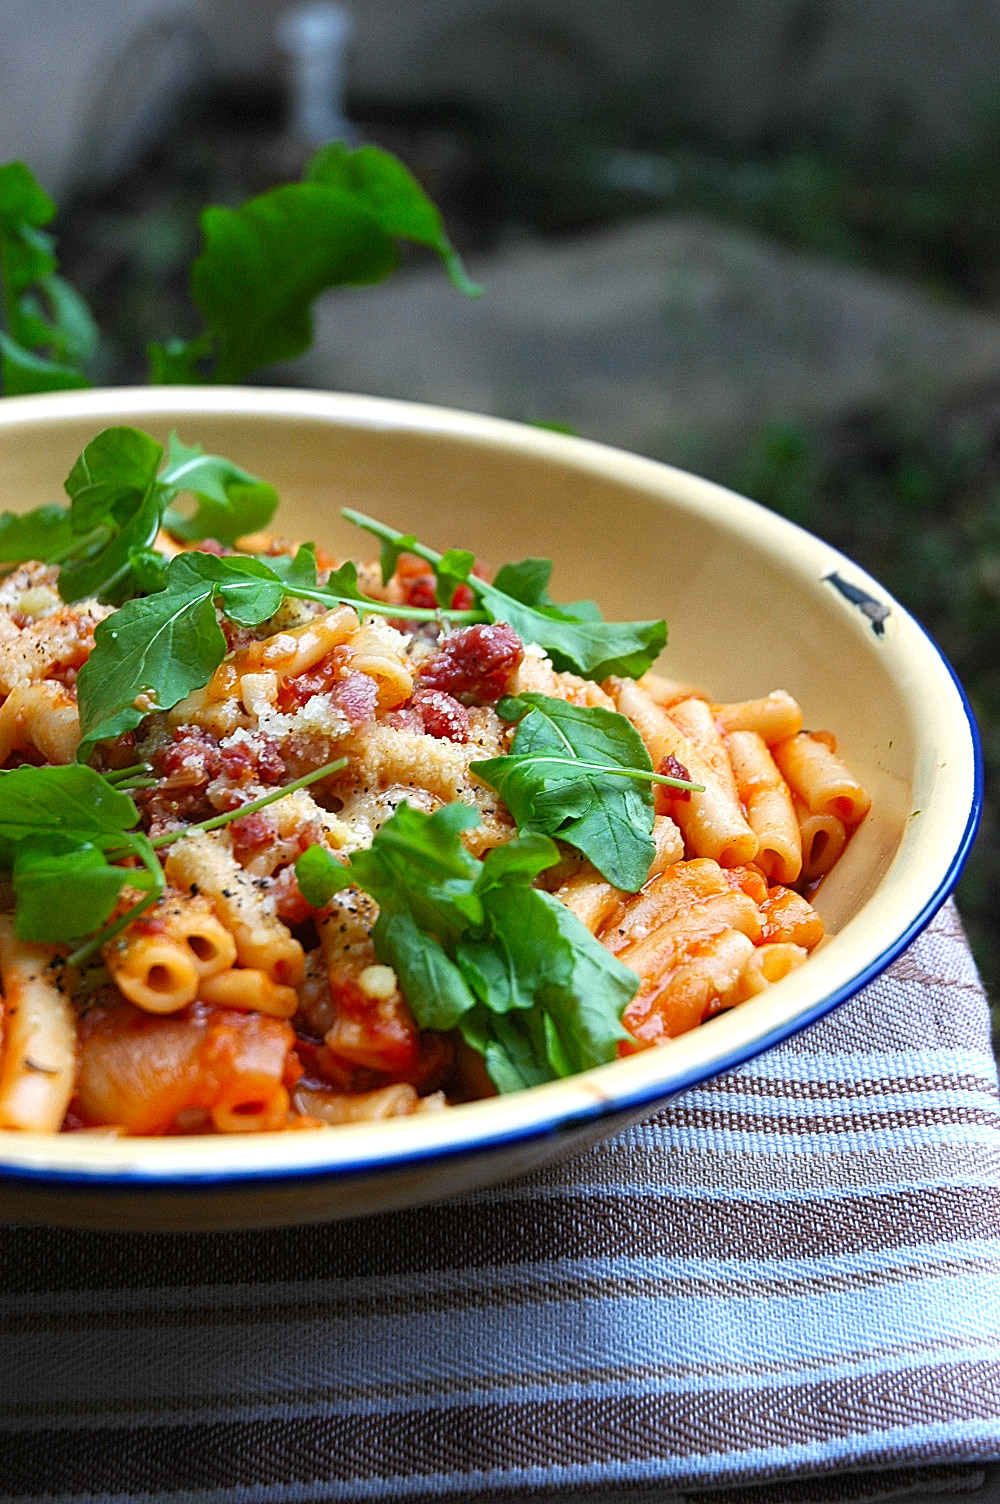 Pasta with Roasted Garlic and Tomato Sauce - My Easy Cooking